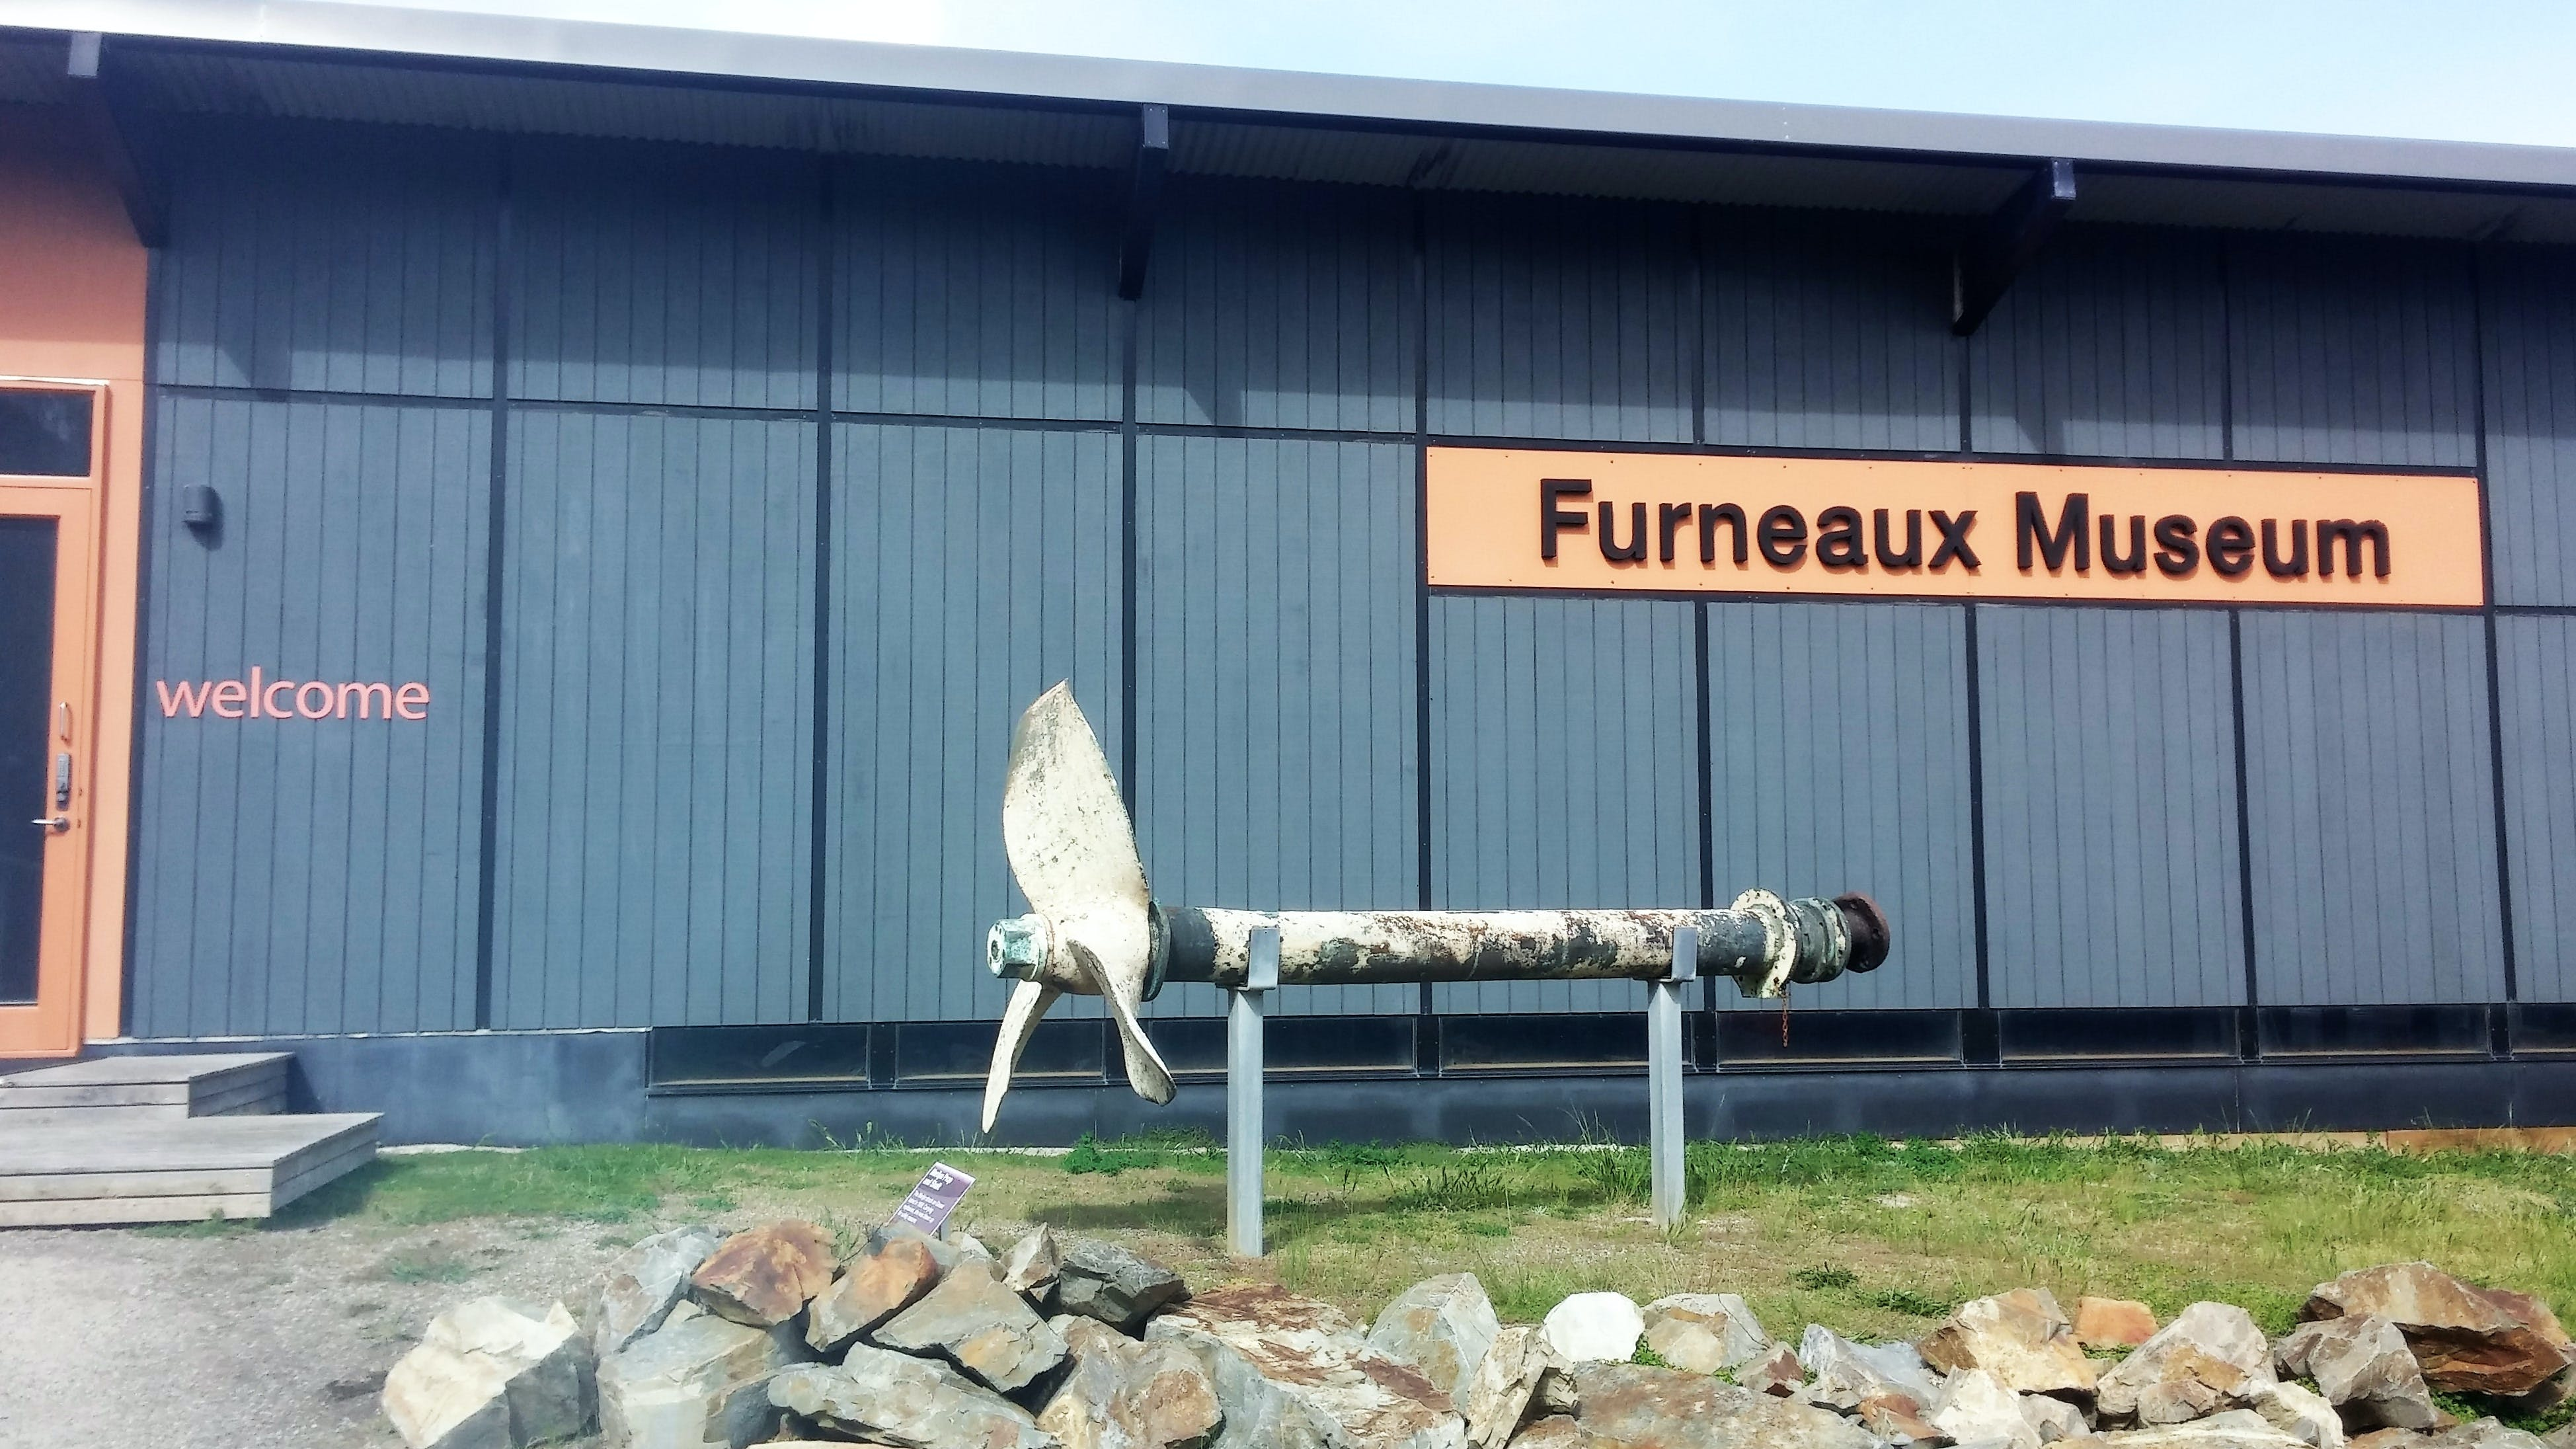 Furneaux Museum - Geraldton Accommodation